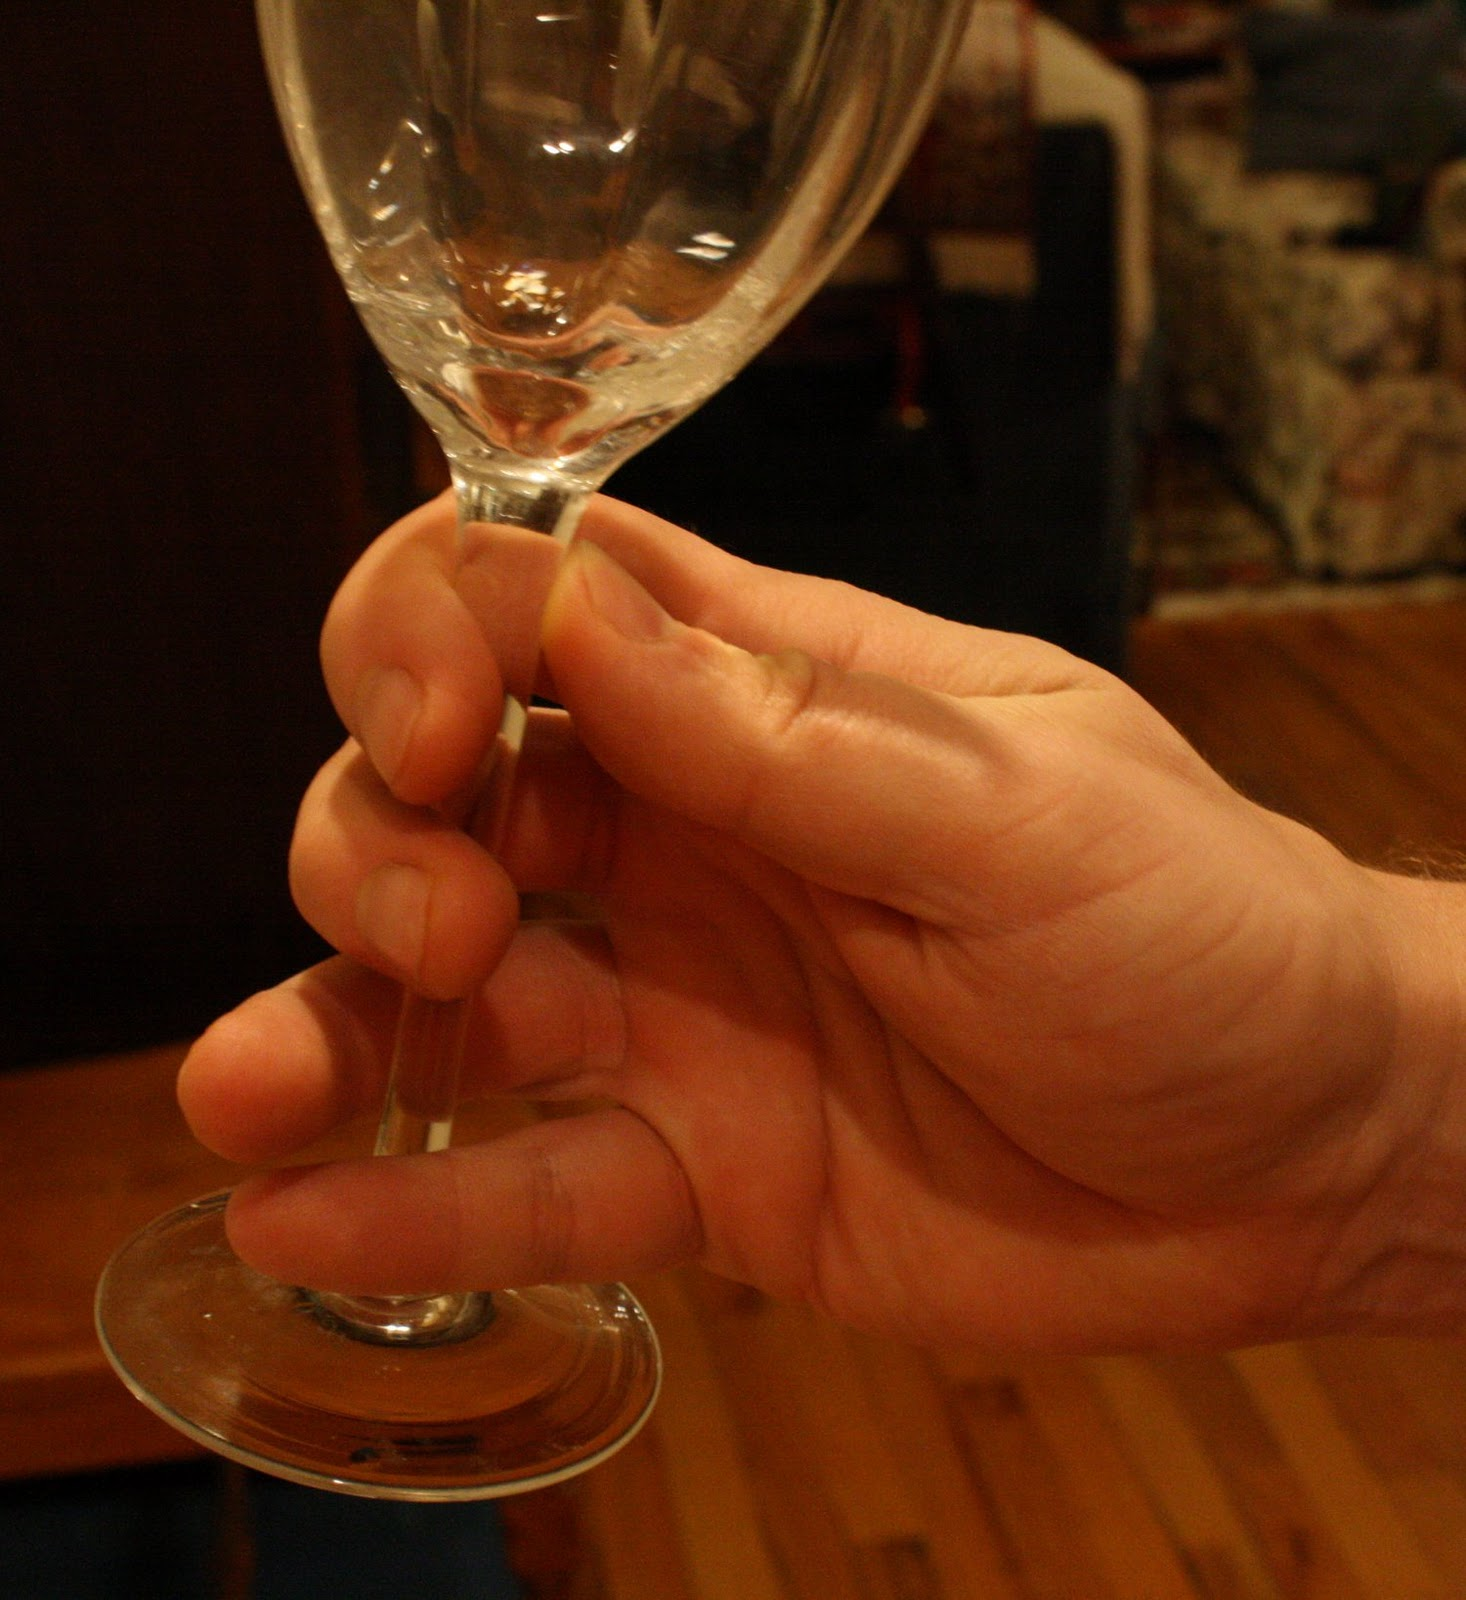 Speaking the local vinacular how to hold a wine glass properly a common way to hold the glass ccuart Gallery